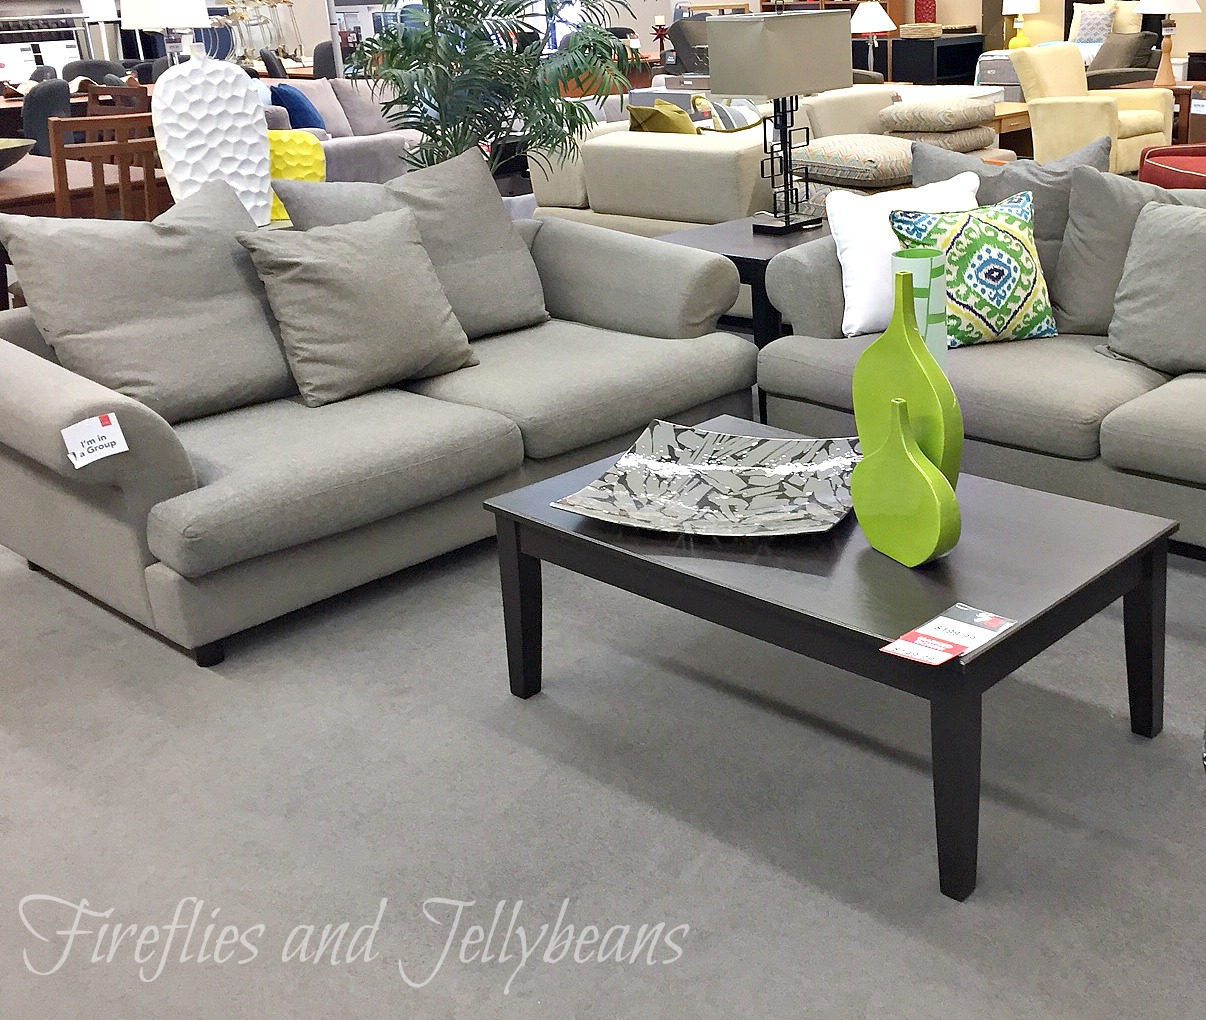 Cort Furniture Clearance Center